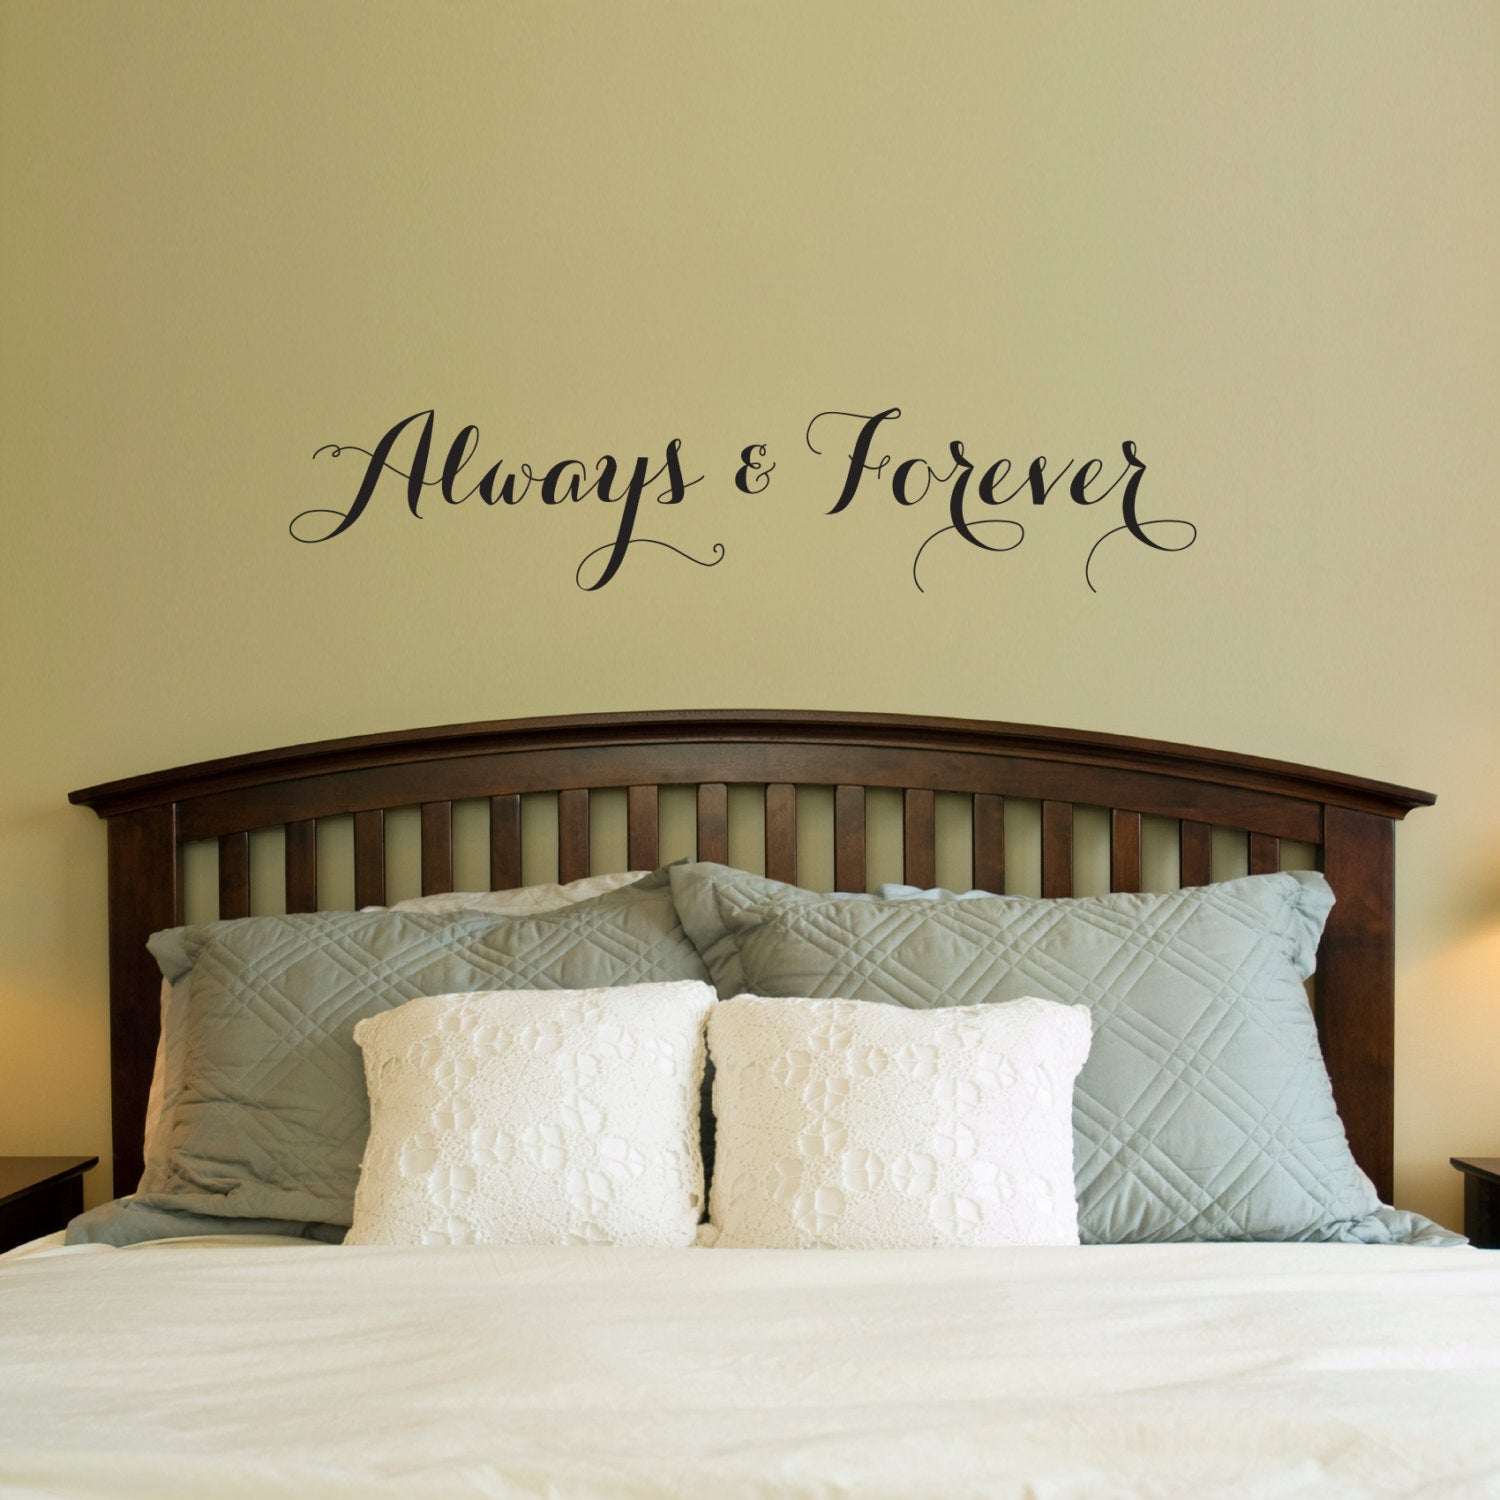 Wall Decals - All Page 21 - Stephen Edward Graphics